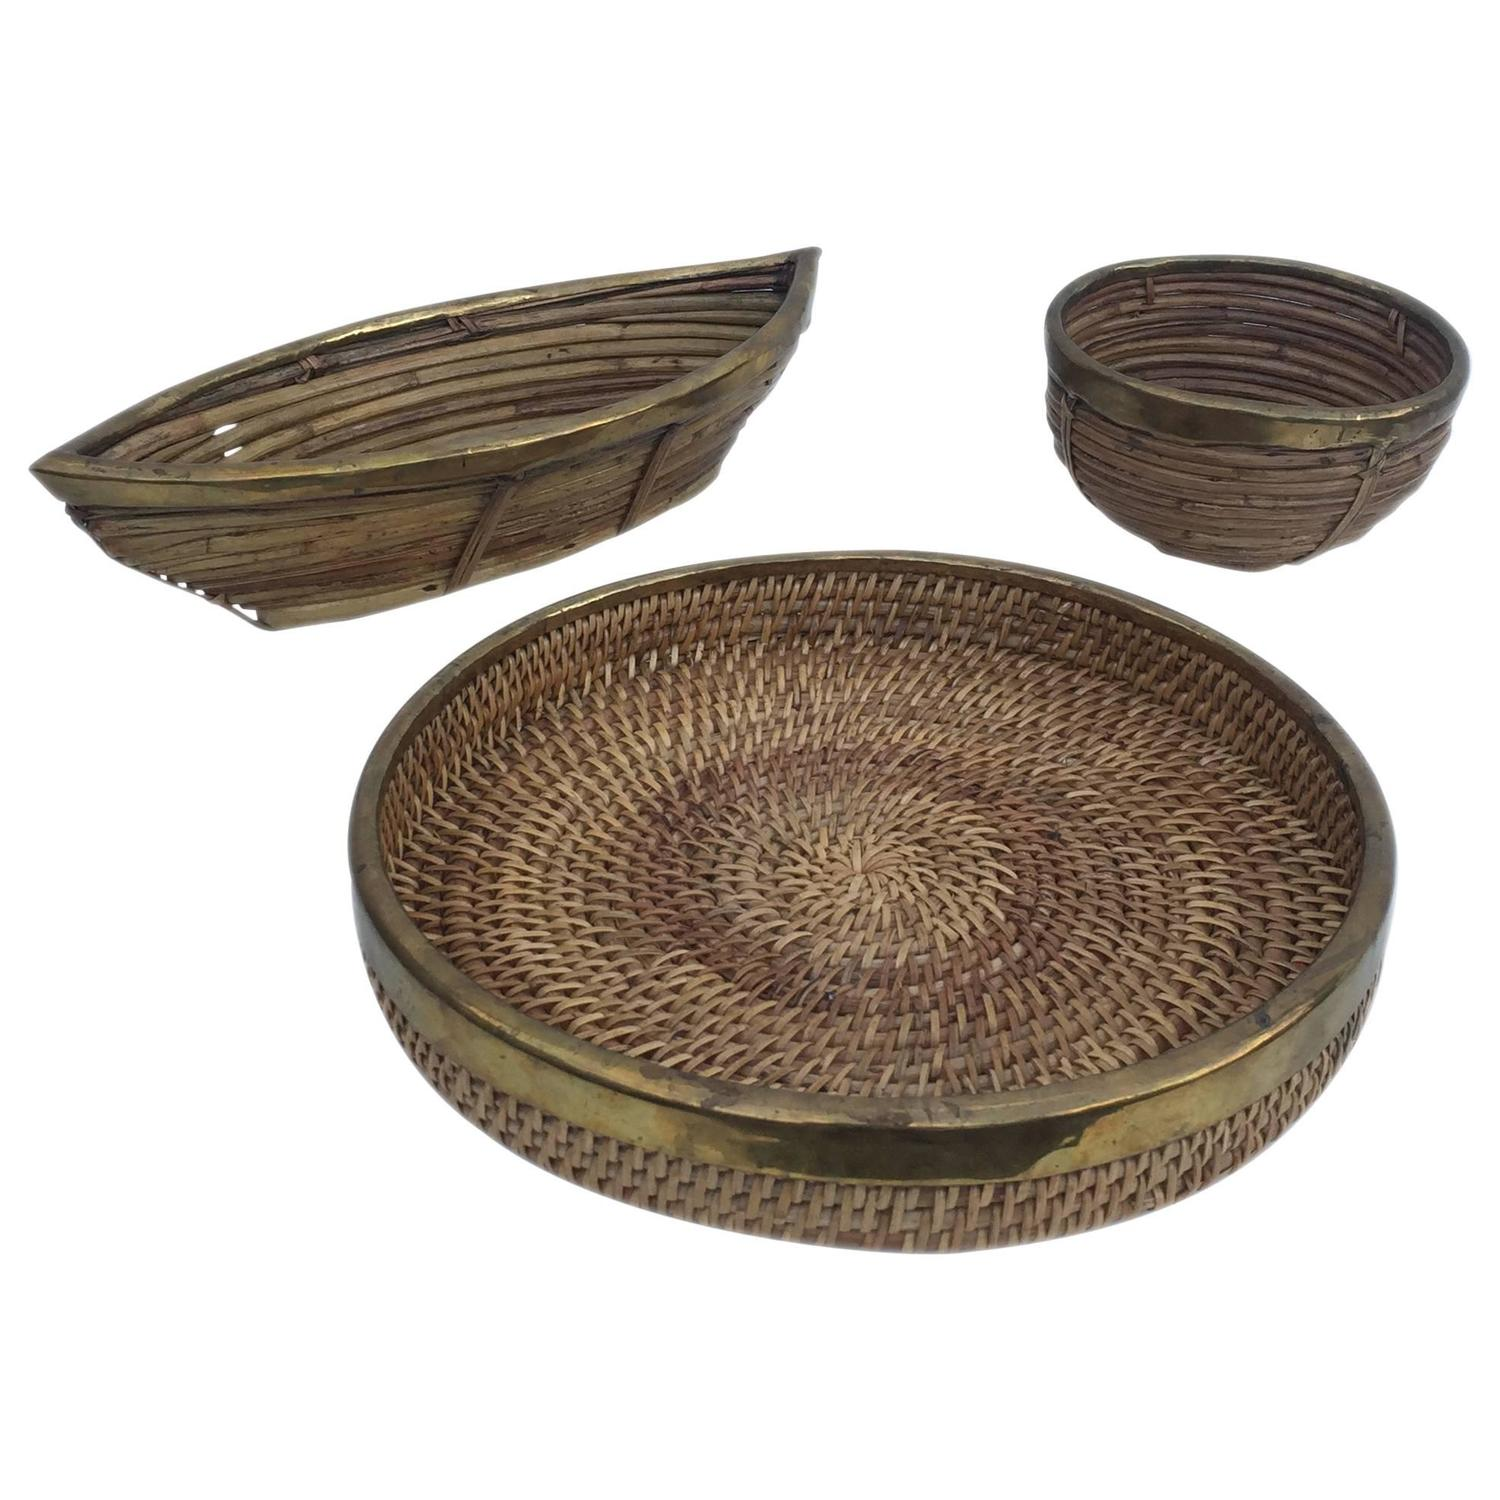 Wicker Bowl Chair Trio Of Rattan And Brass Bowls For Sale At 1stdibs